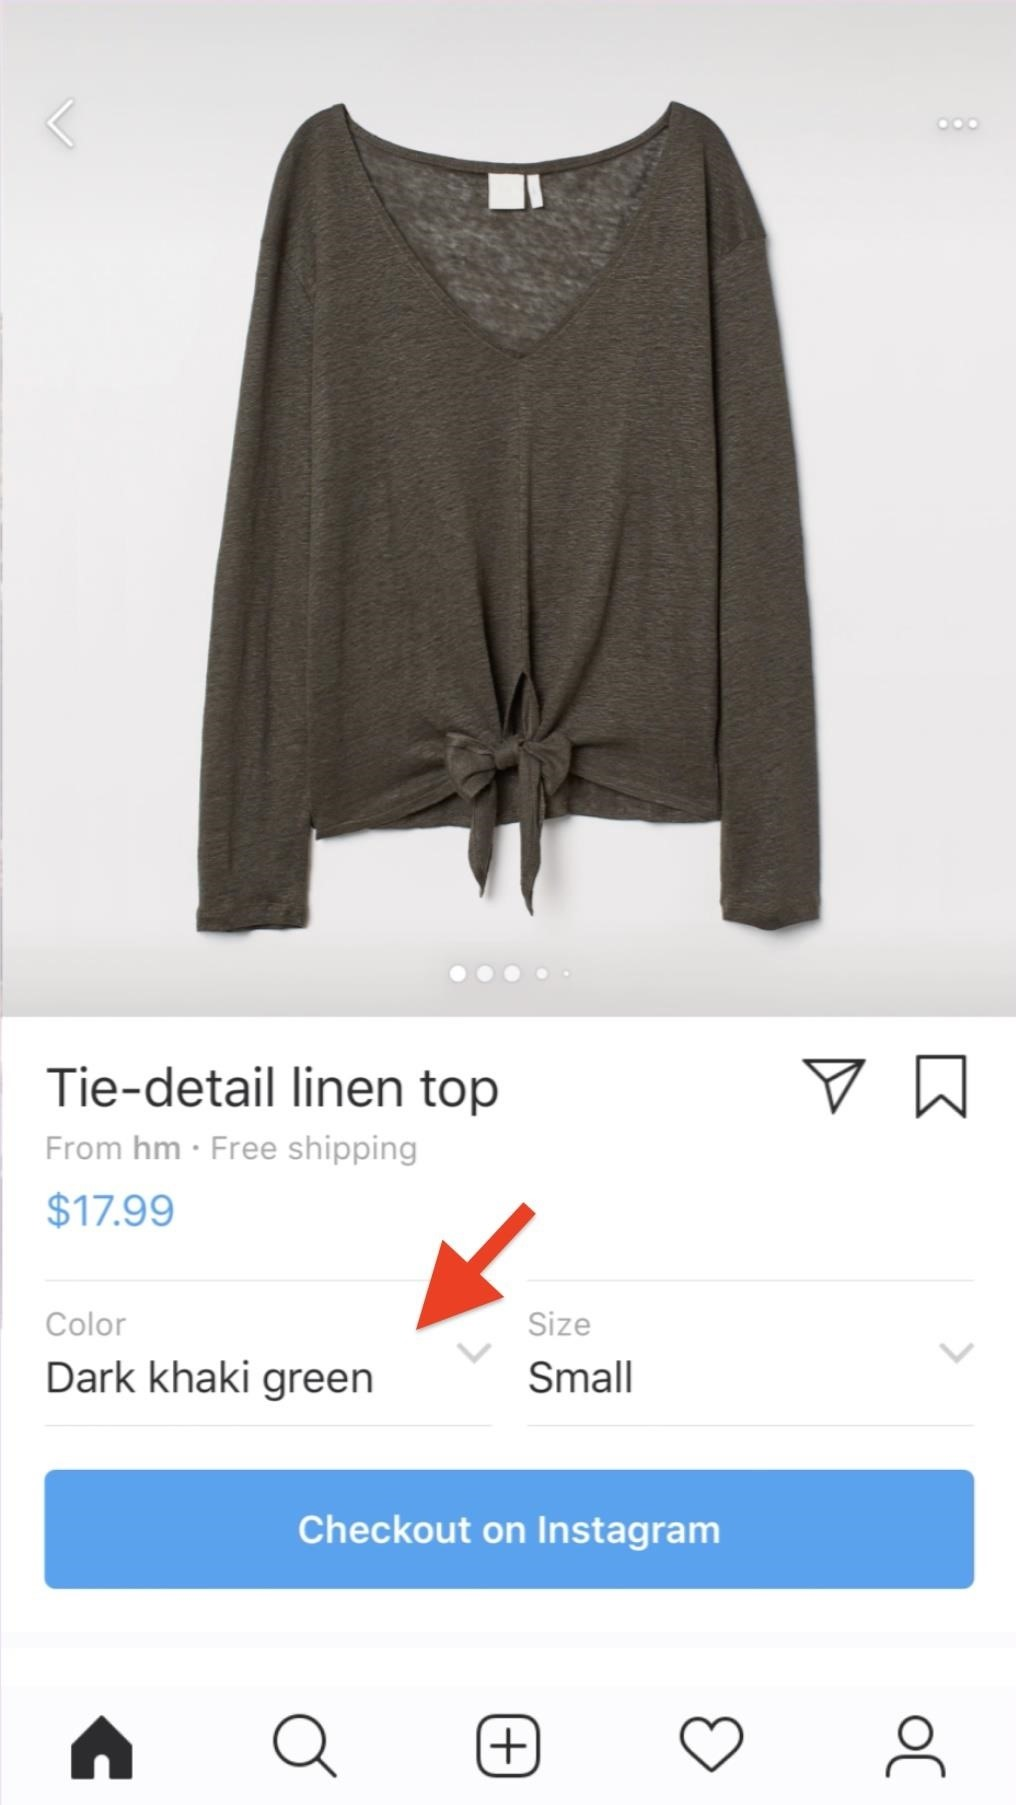 Make Buying Stuff Easier on Instagram with the New Checkout Feature